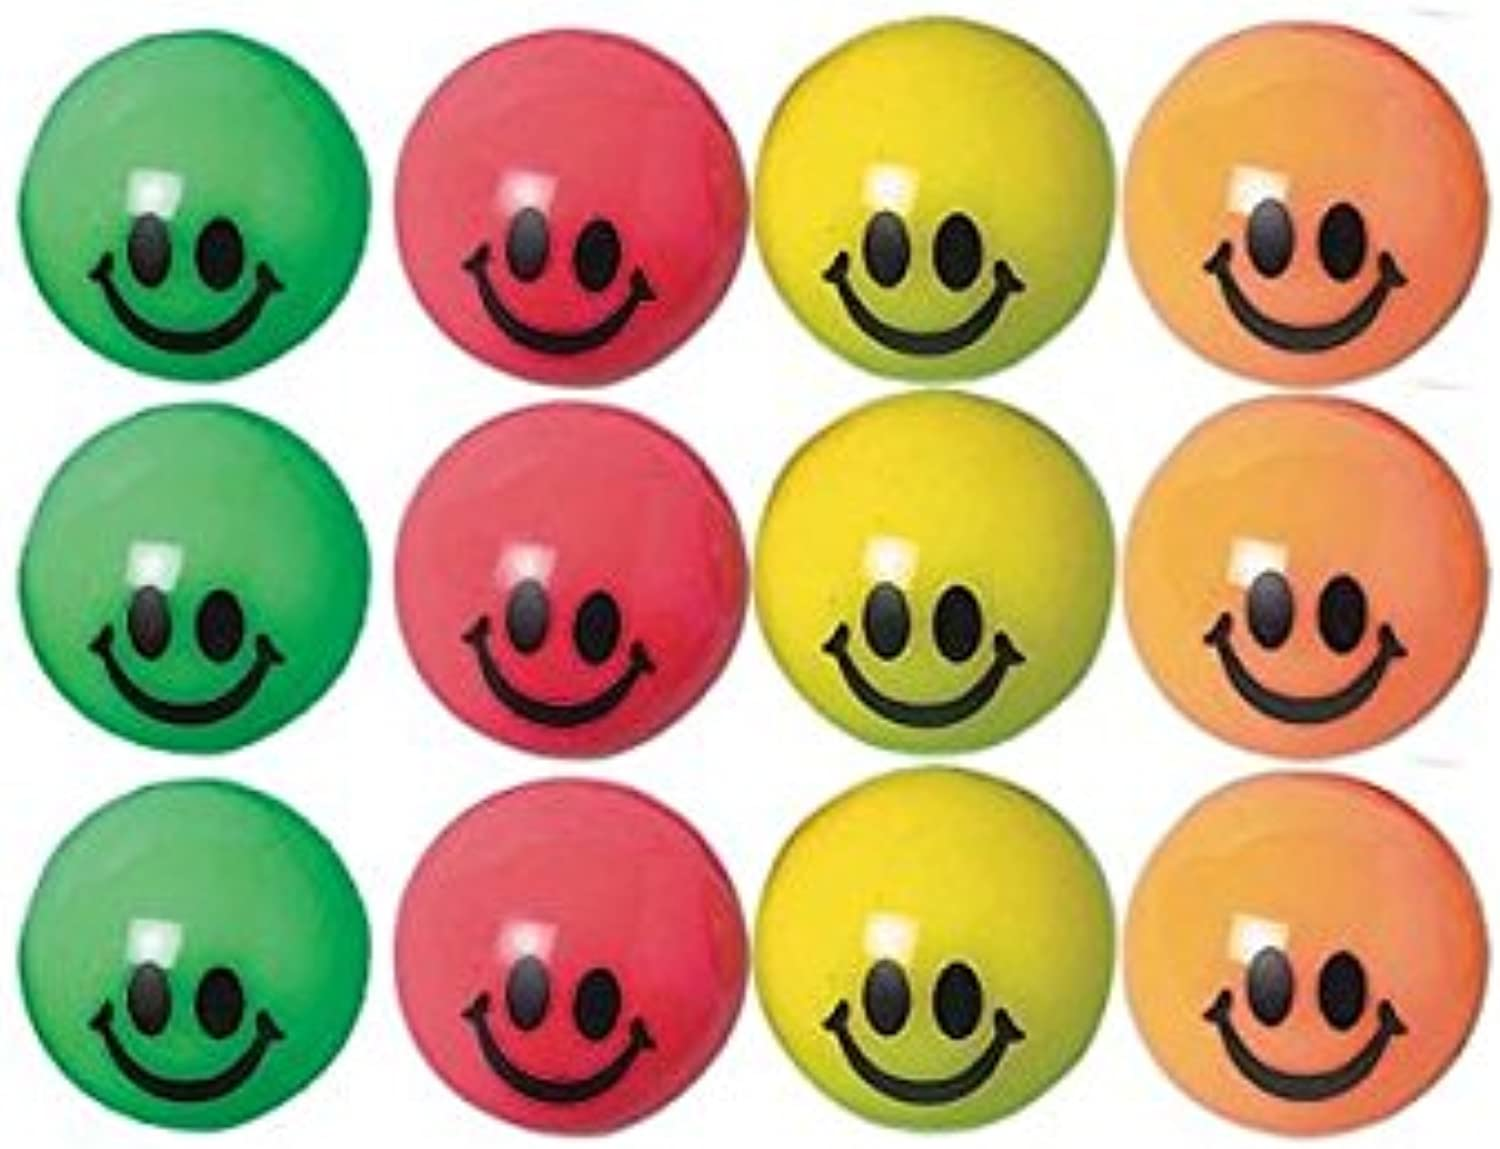 Fun Smiley Bounce Balls Party Toy Favour and Prize Giveaway, 35mm, Pack of 12.